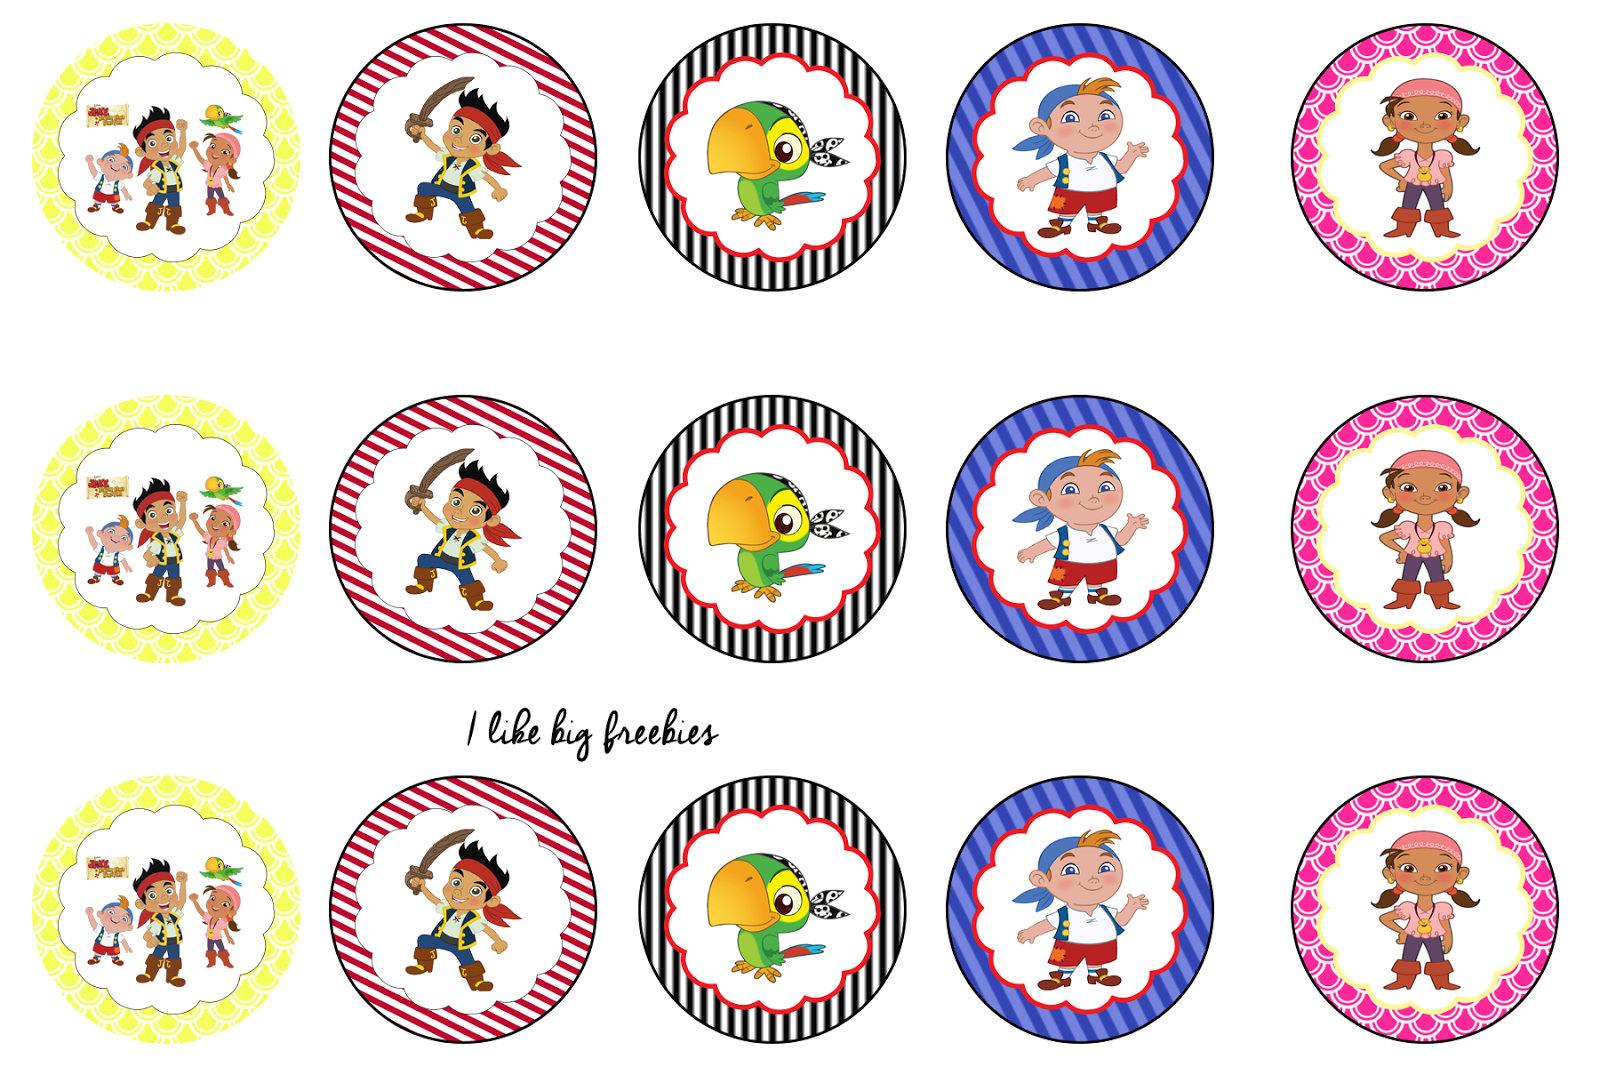 Jake and the Neverland Pirates bottlecap image sheet | Birthdays ...